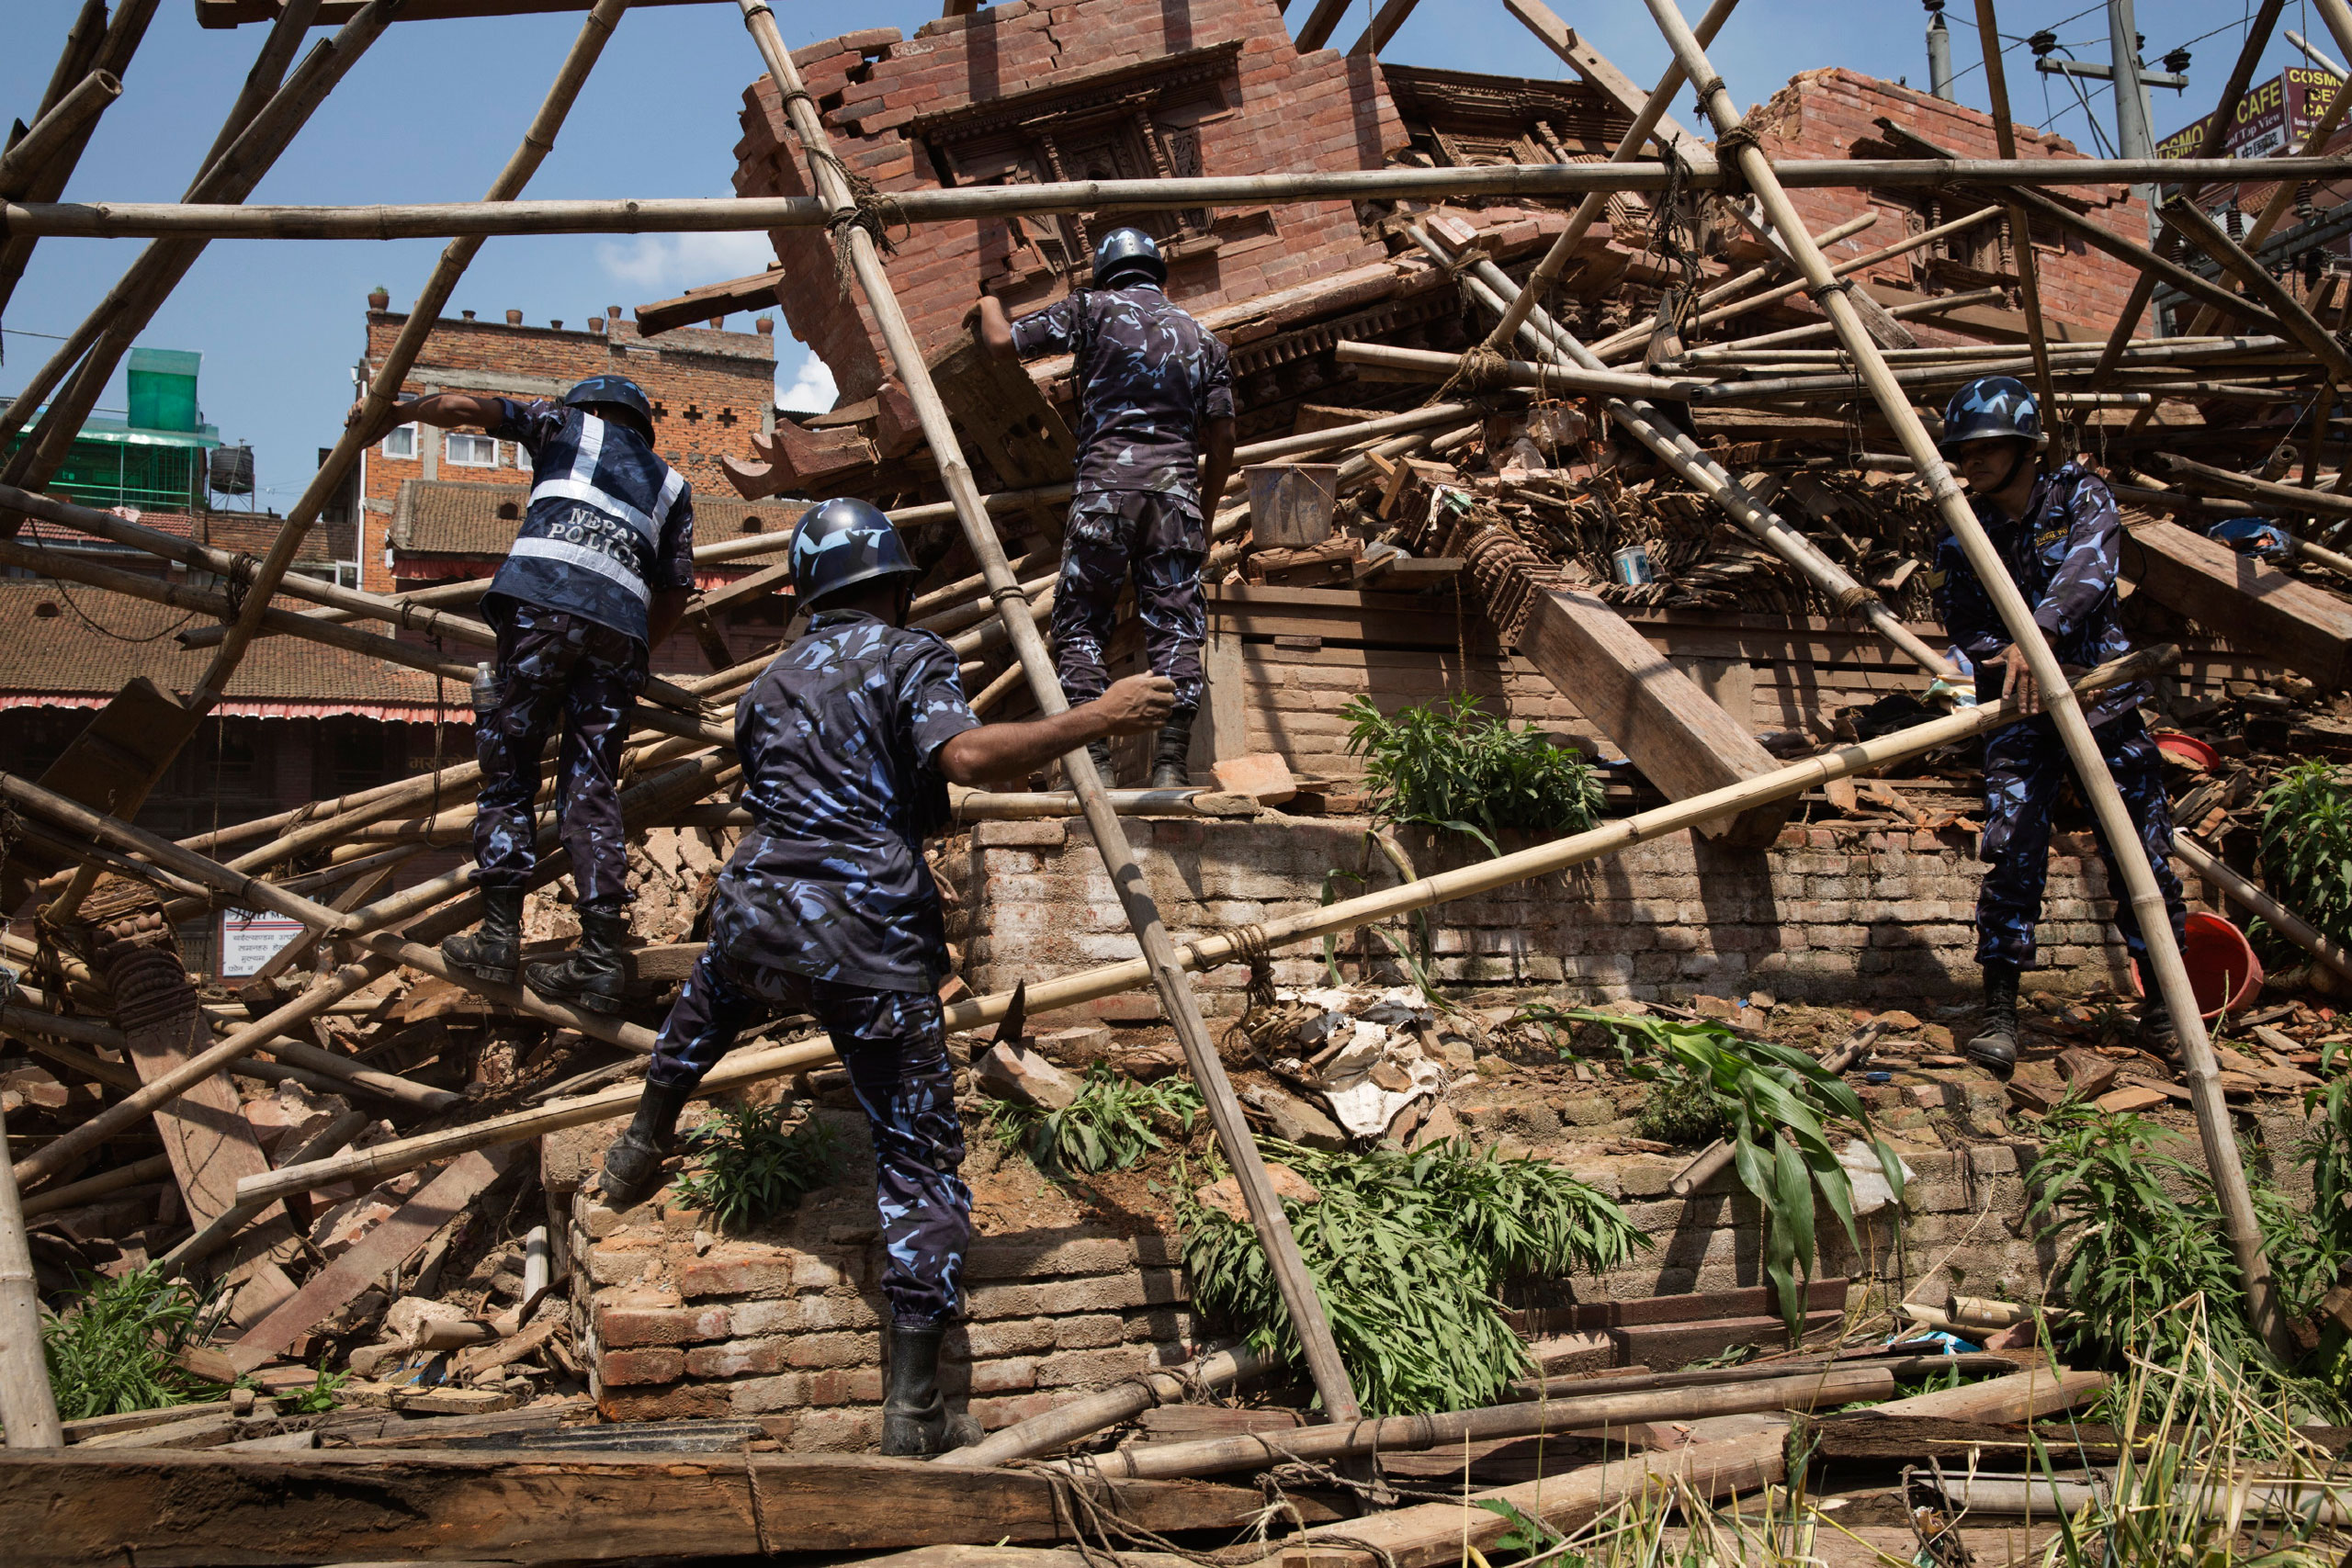 Nepalese forces clear fallen bamboo from ruins in Durbar Square, Kathmandu, April 26, 2015.